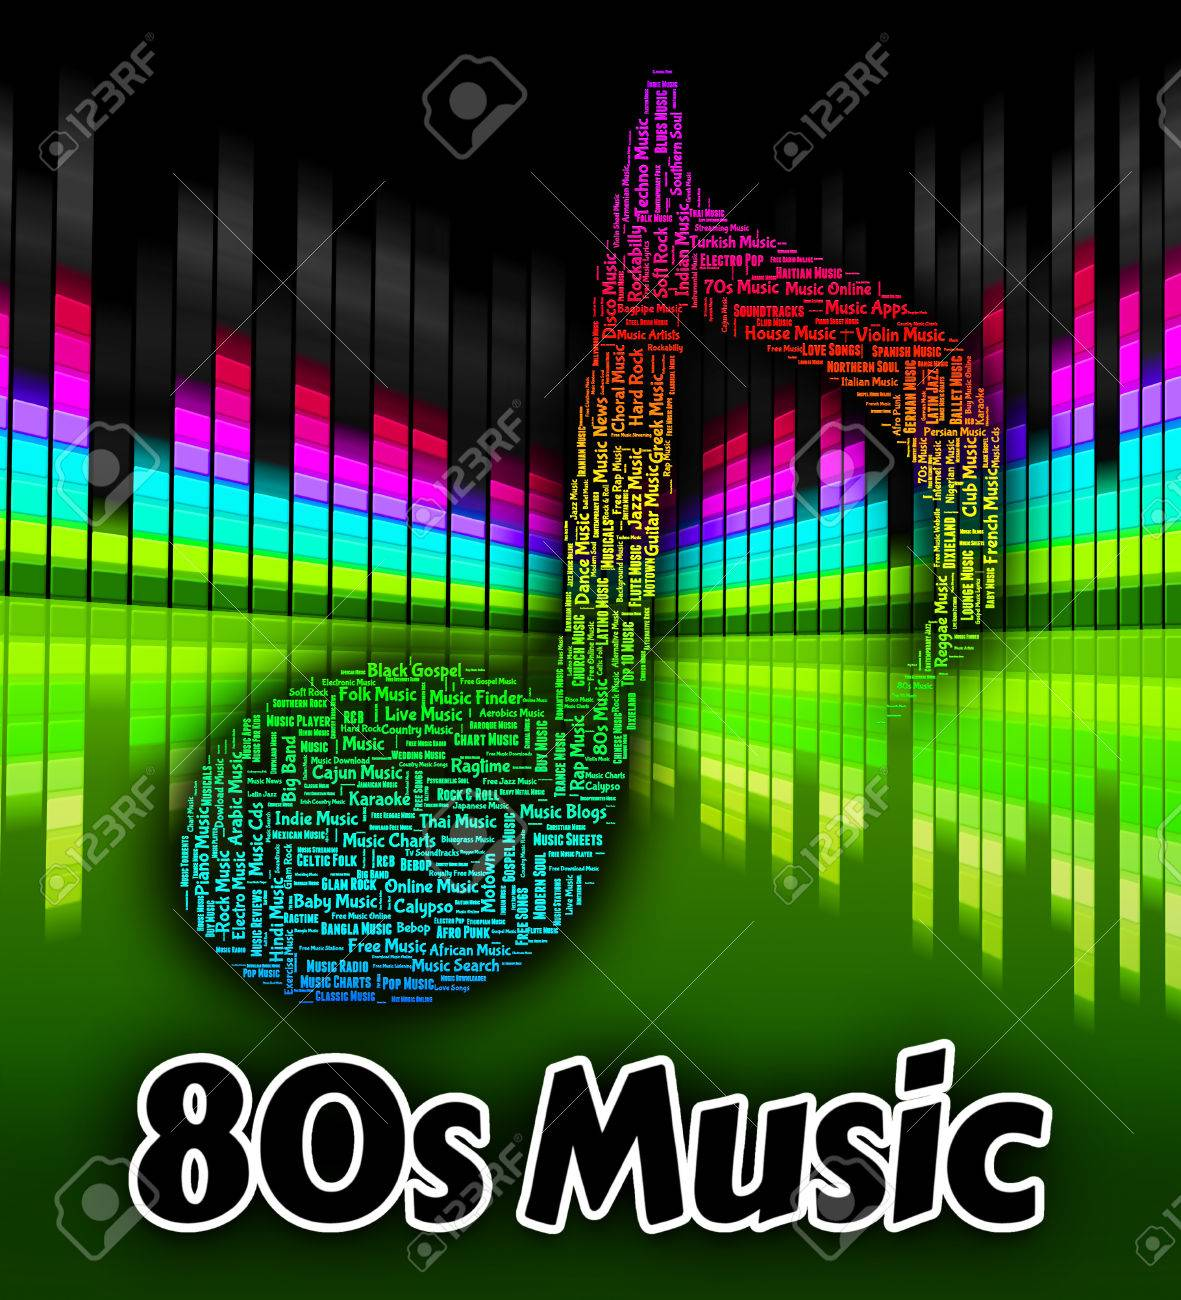 Eighties Music Indicating Sound Tracks And Acoustic